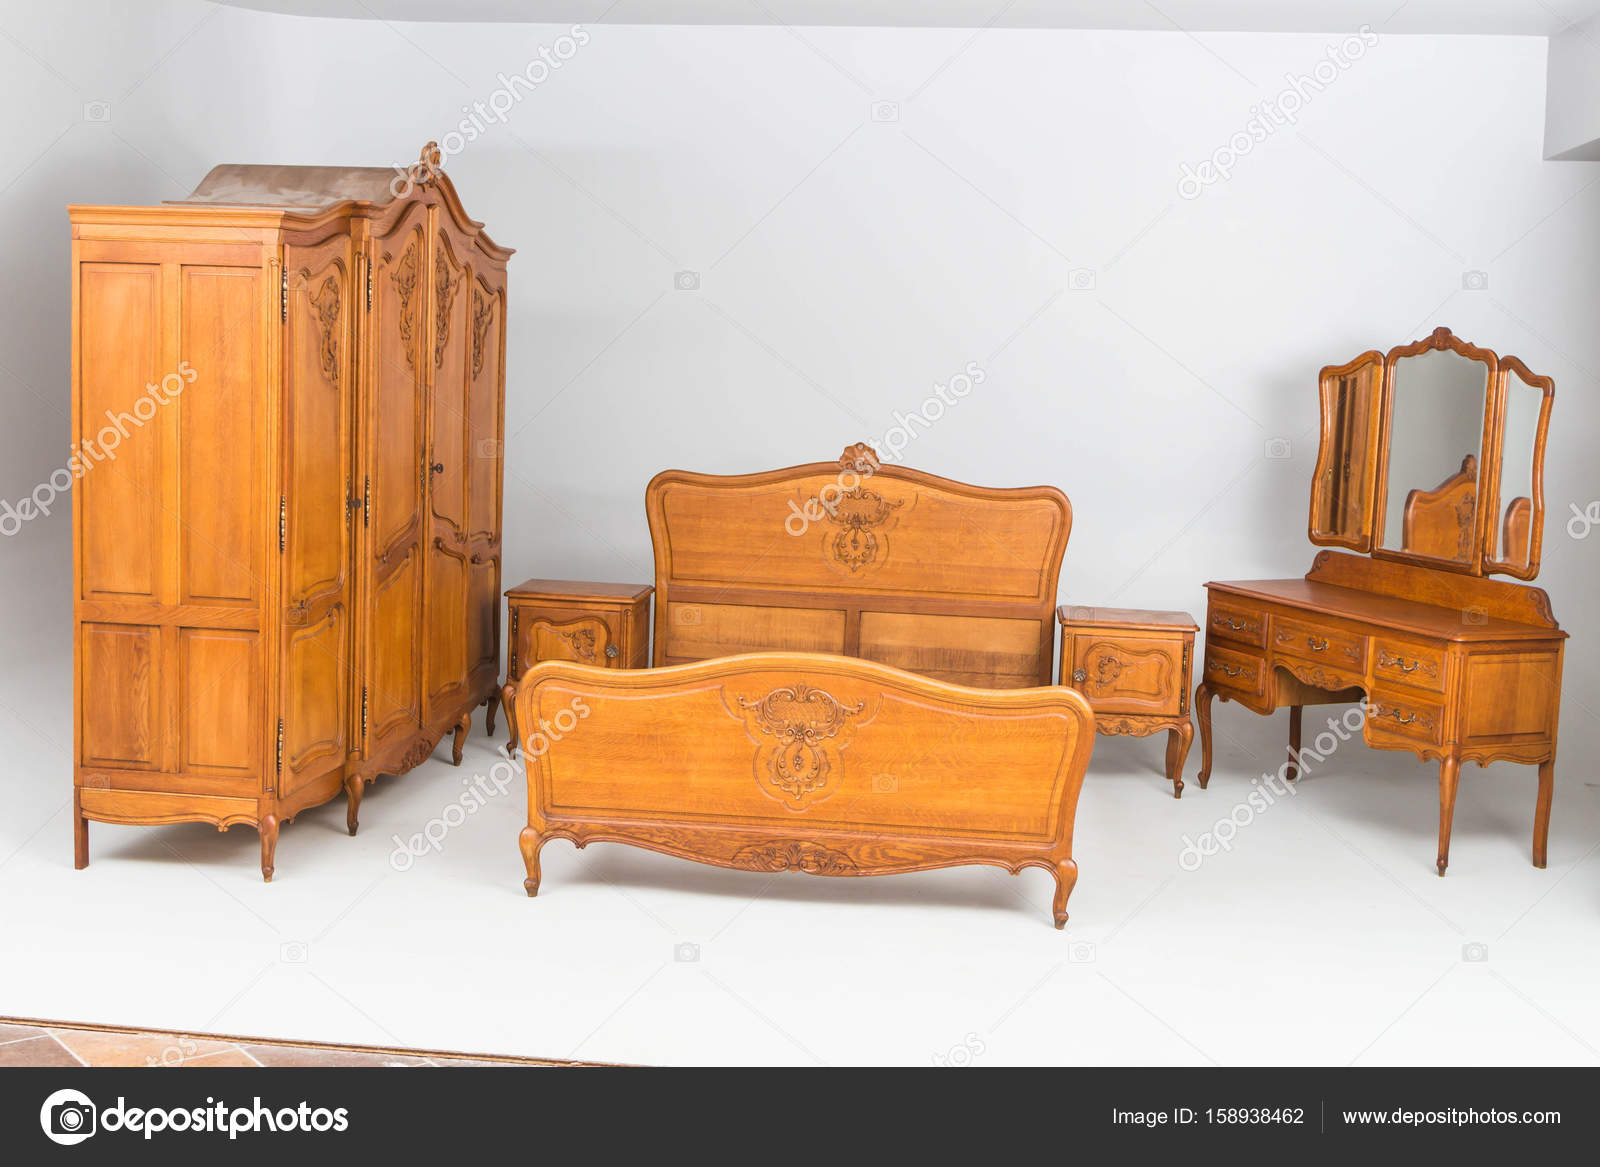 Commodes Anciennes Bois Antique Commodes Photographie Jbgroup 158938462